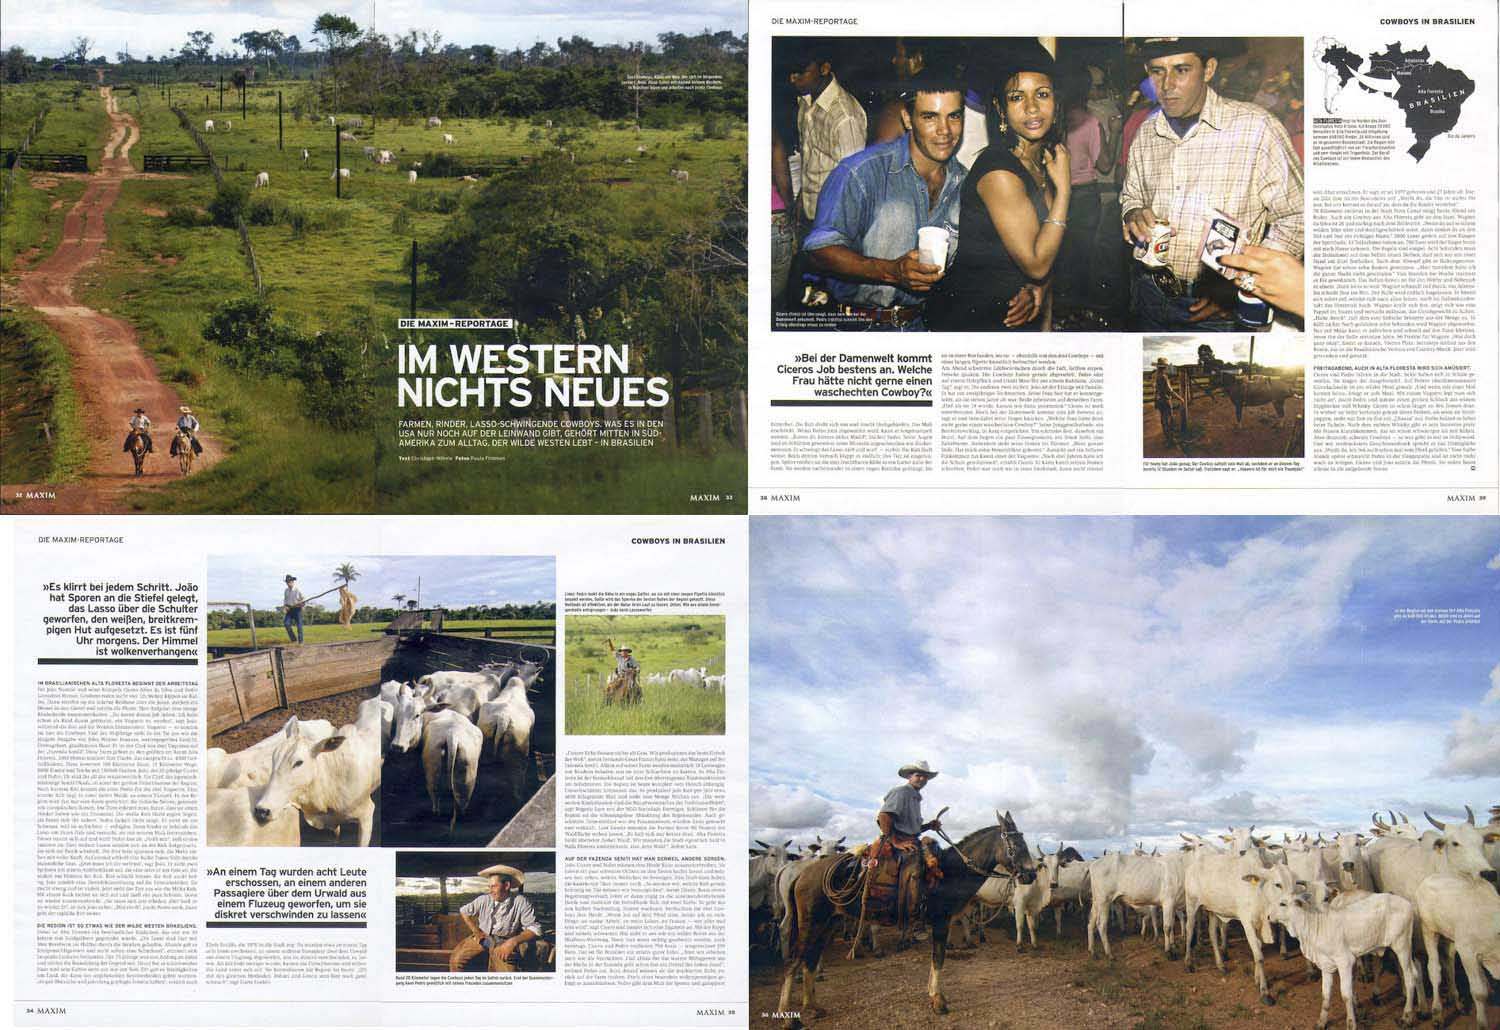 Maxxim Magazine, Essay on Cowboys in Brazil.